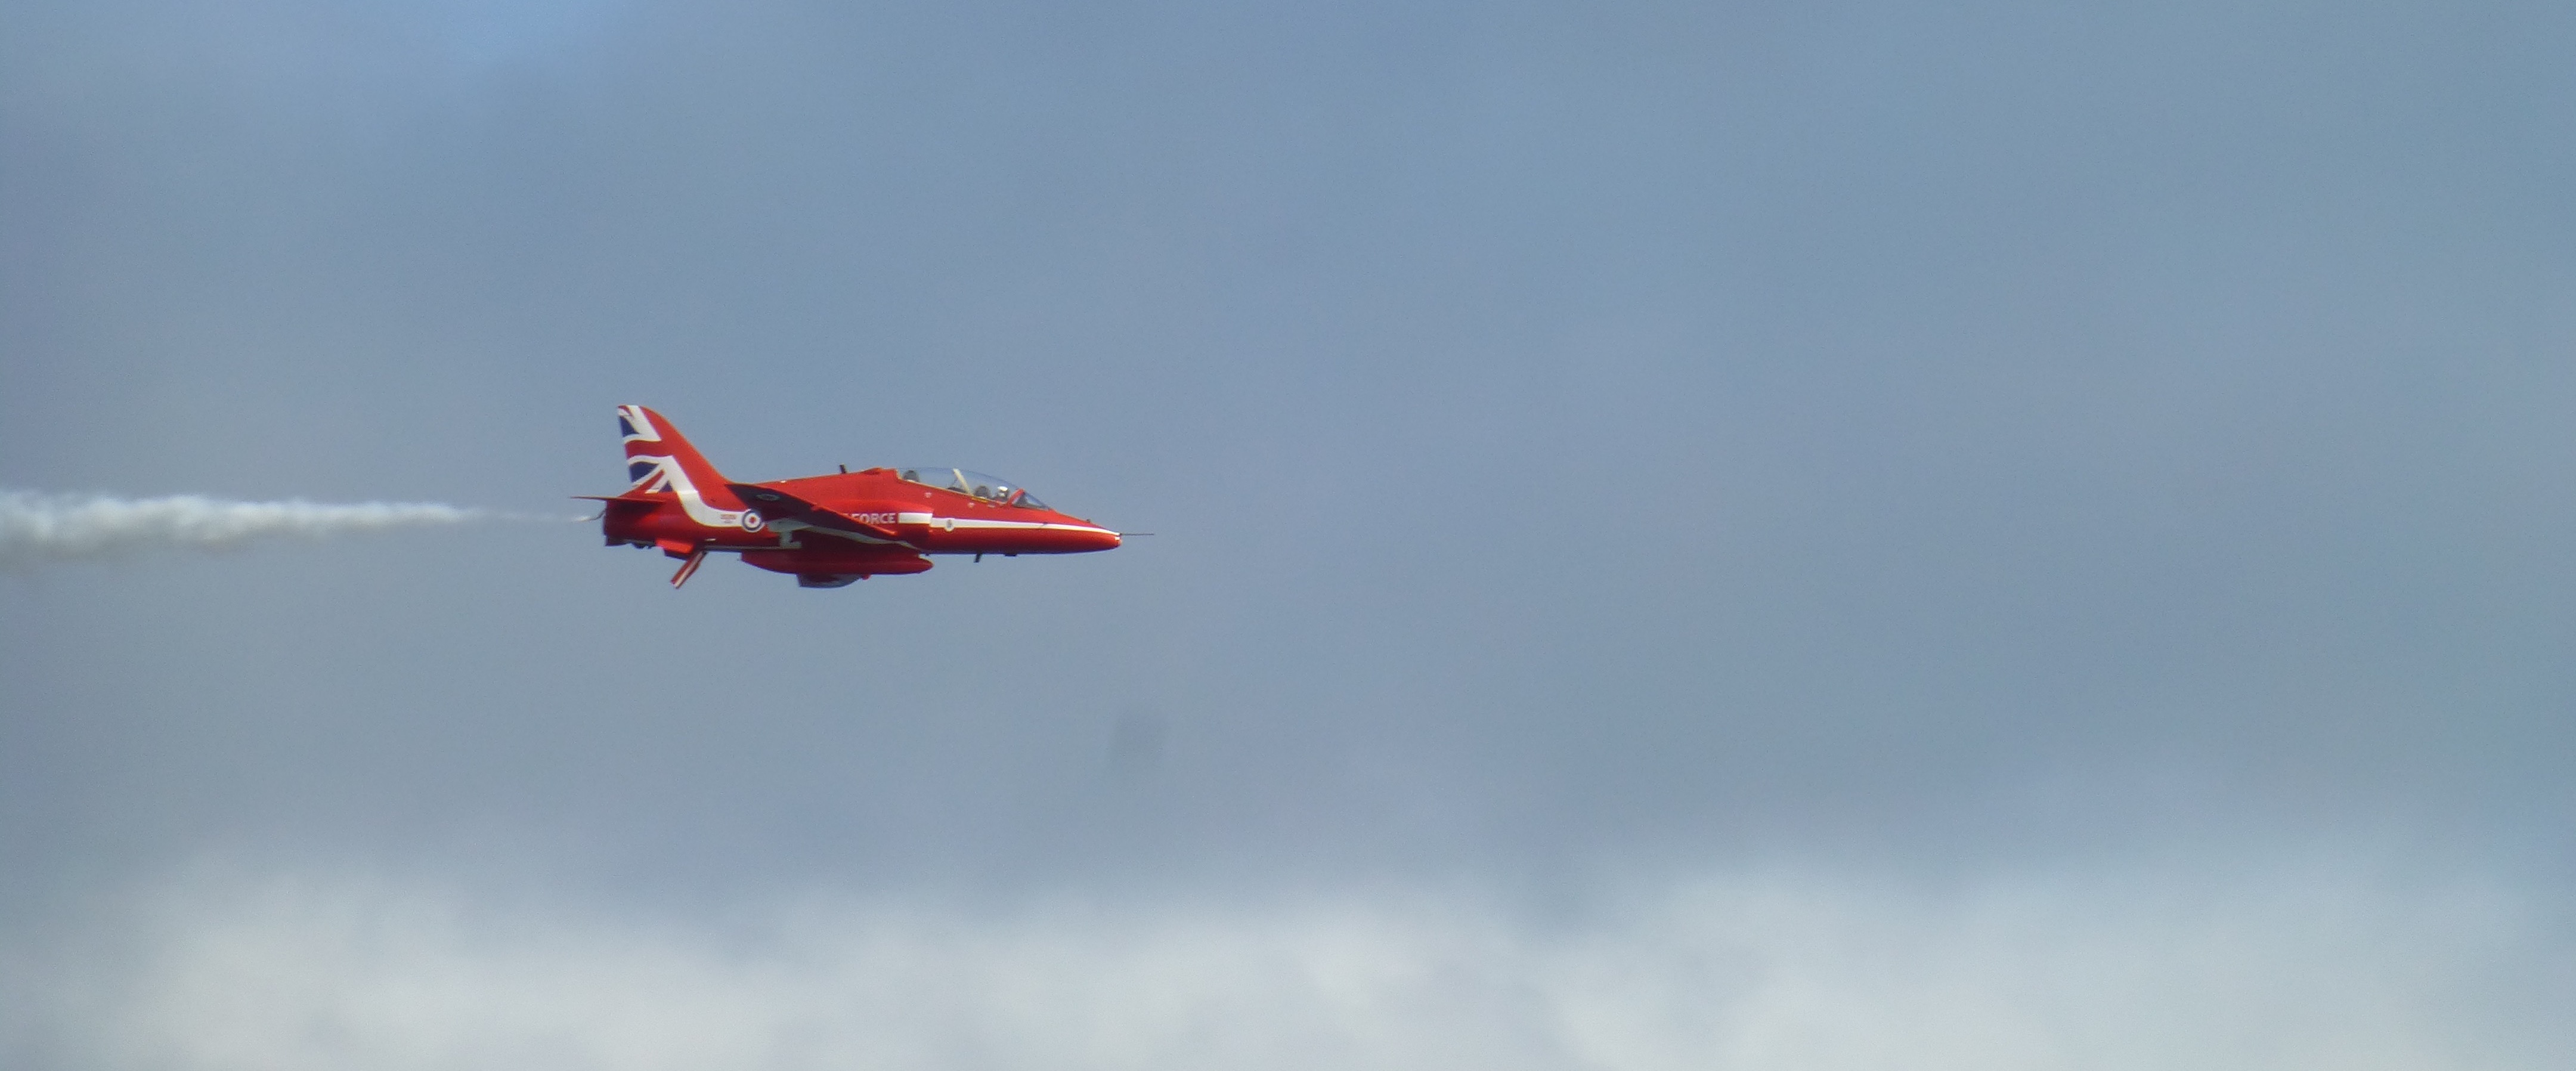 Royal Air Force Red Arrows - Portrush, Air Waves 2015 06/09/2015